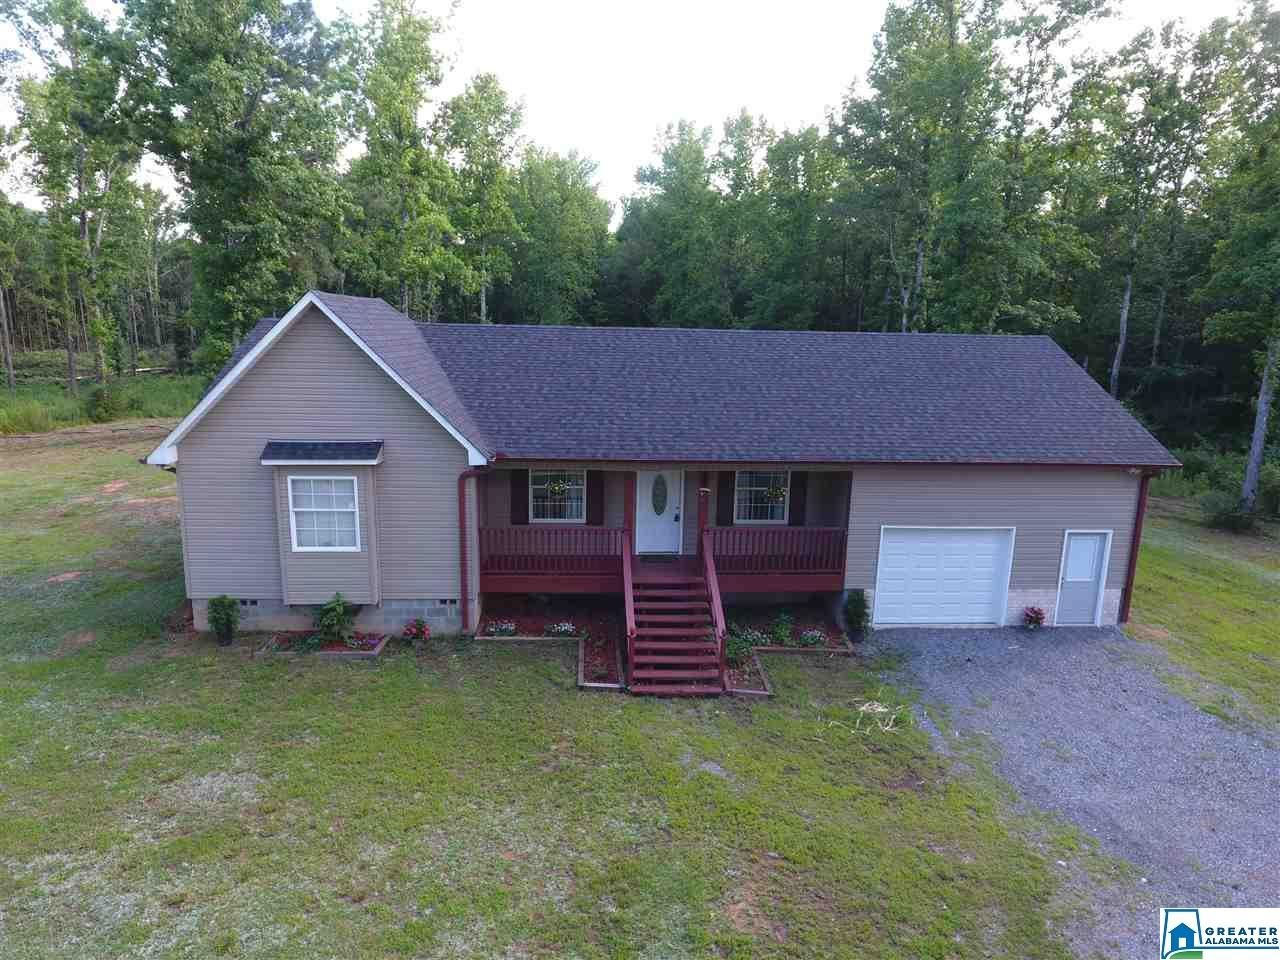 258 PINE MOUNTAIN RD, Remlap, AL 35133 - MLS#: 888022